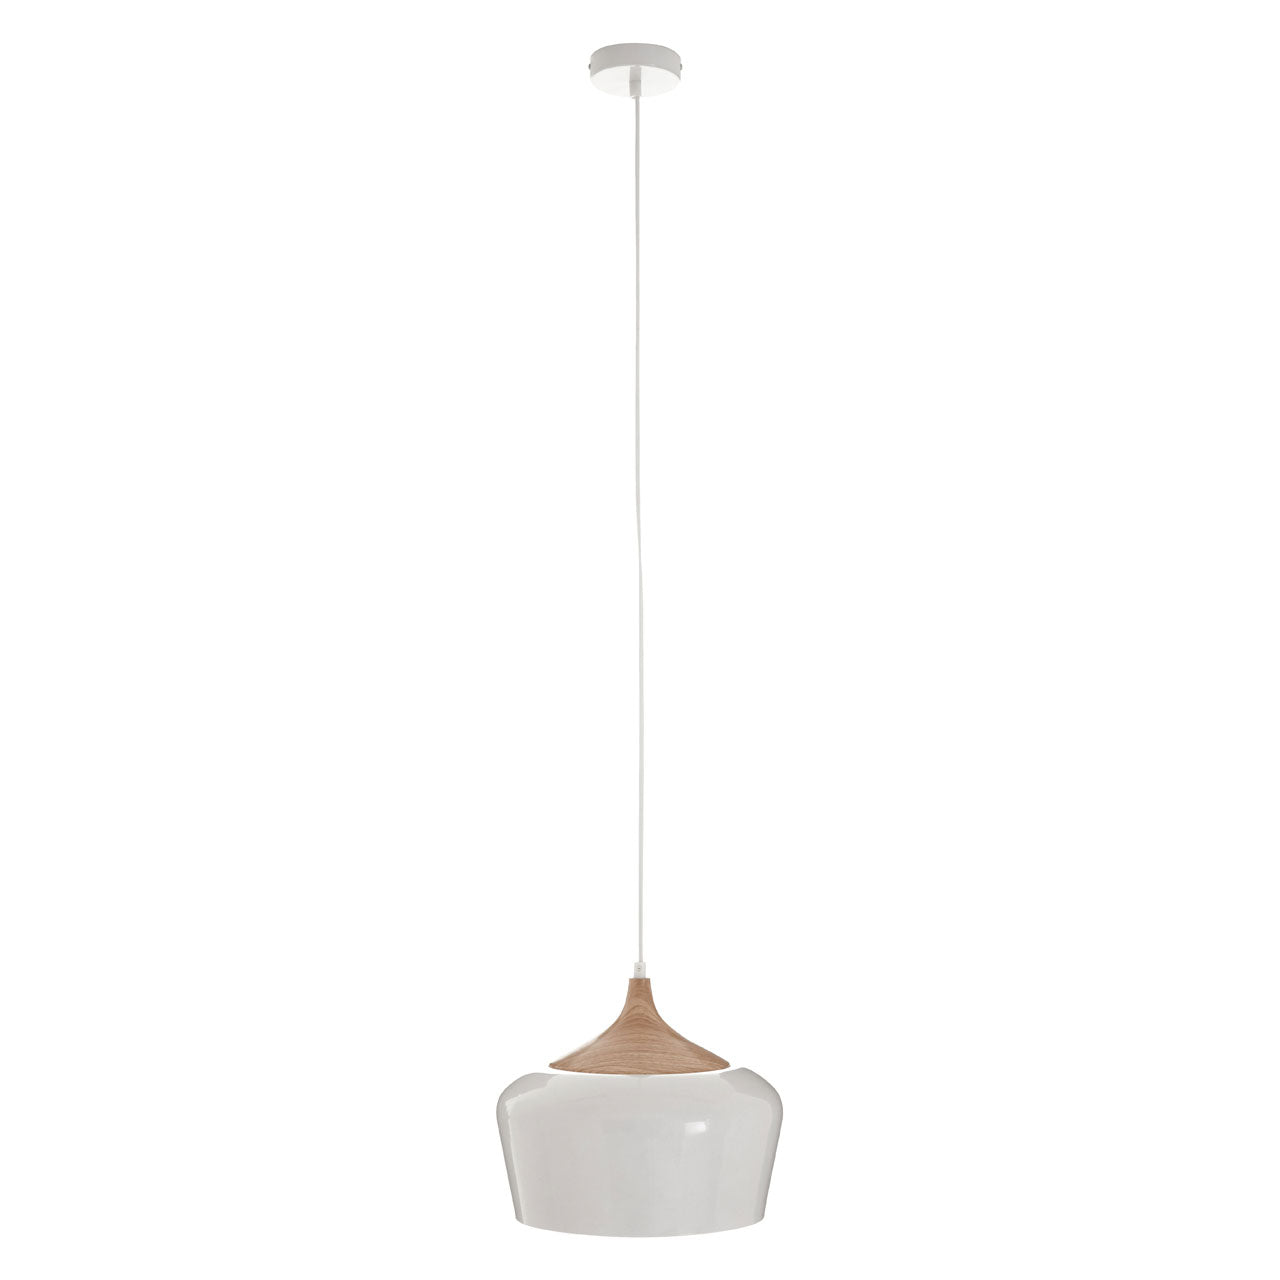 Blayne Pendant Light White - Ezzo